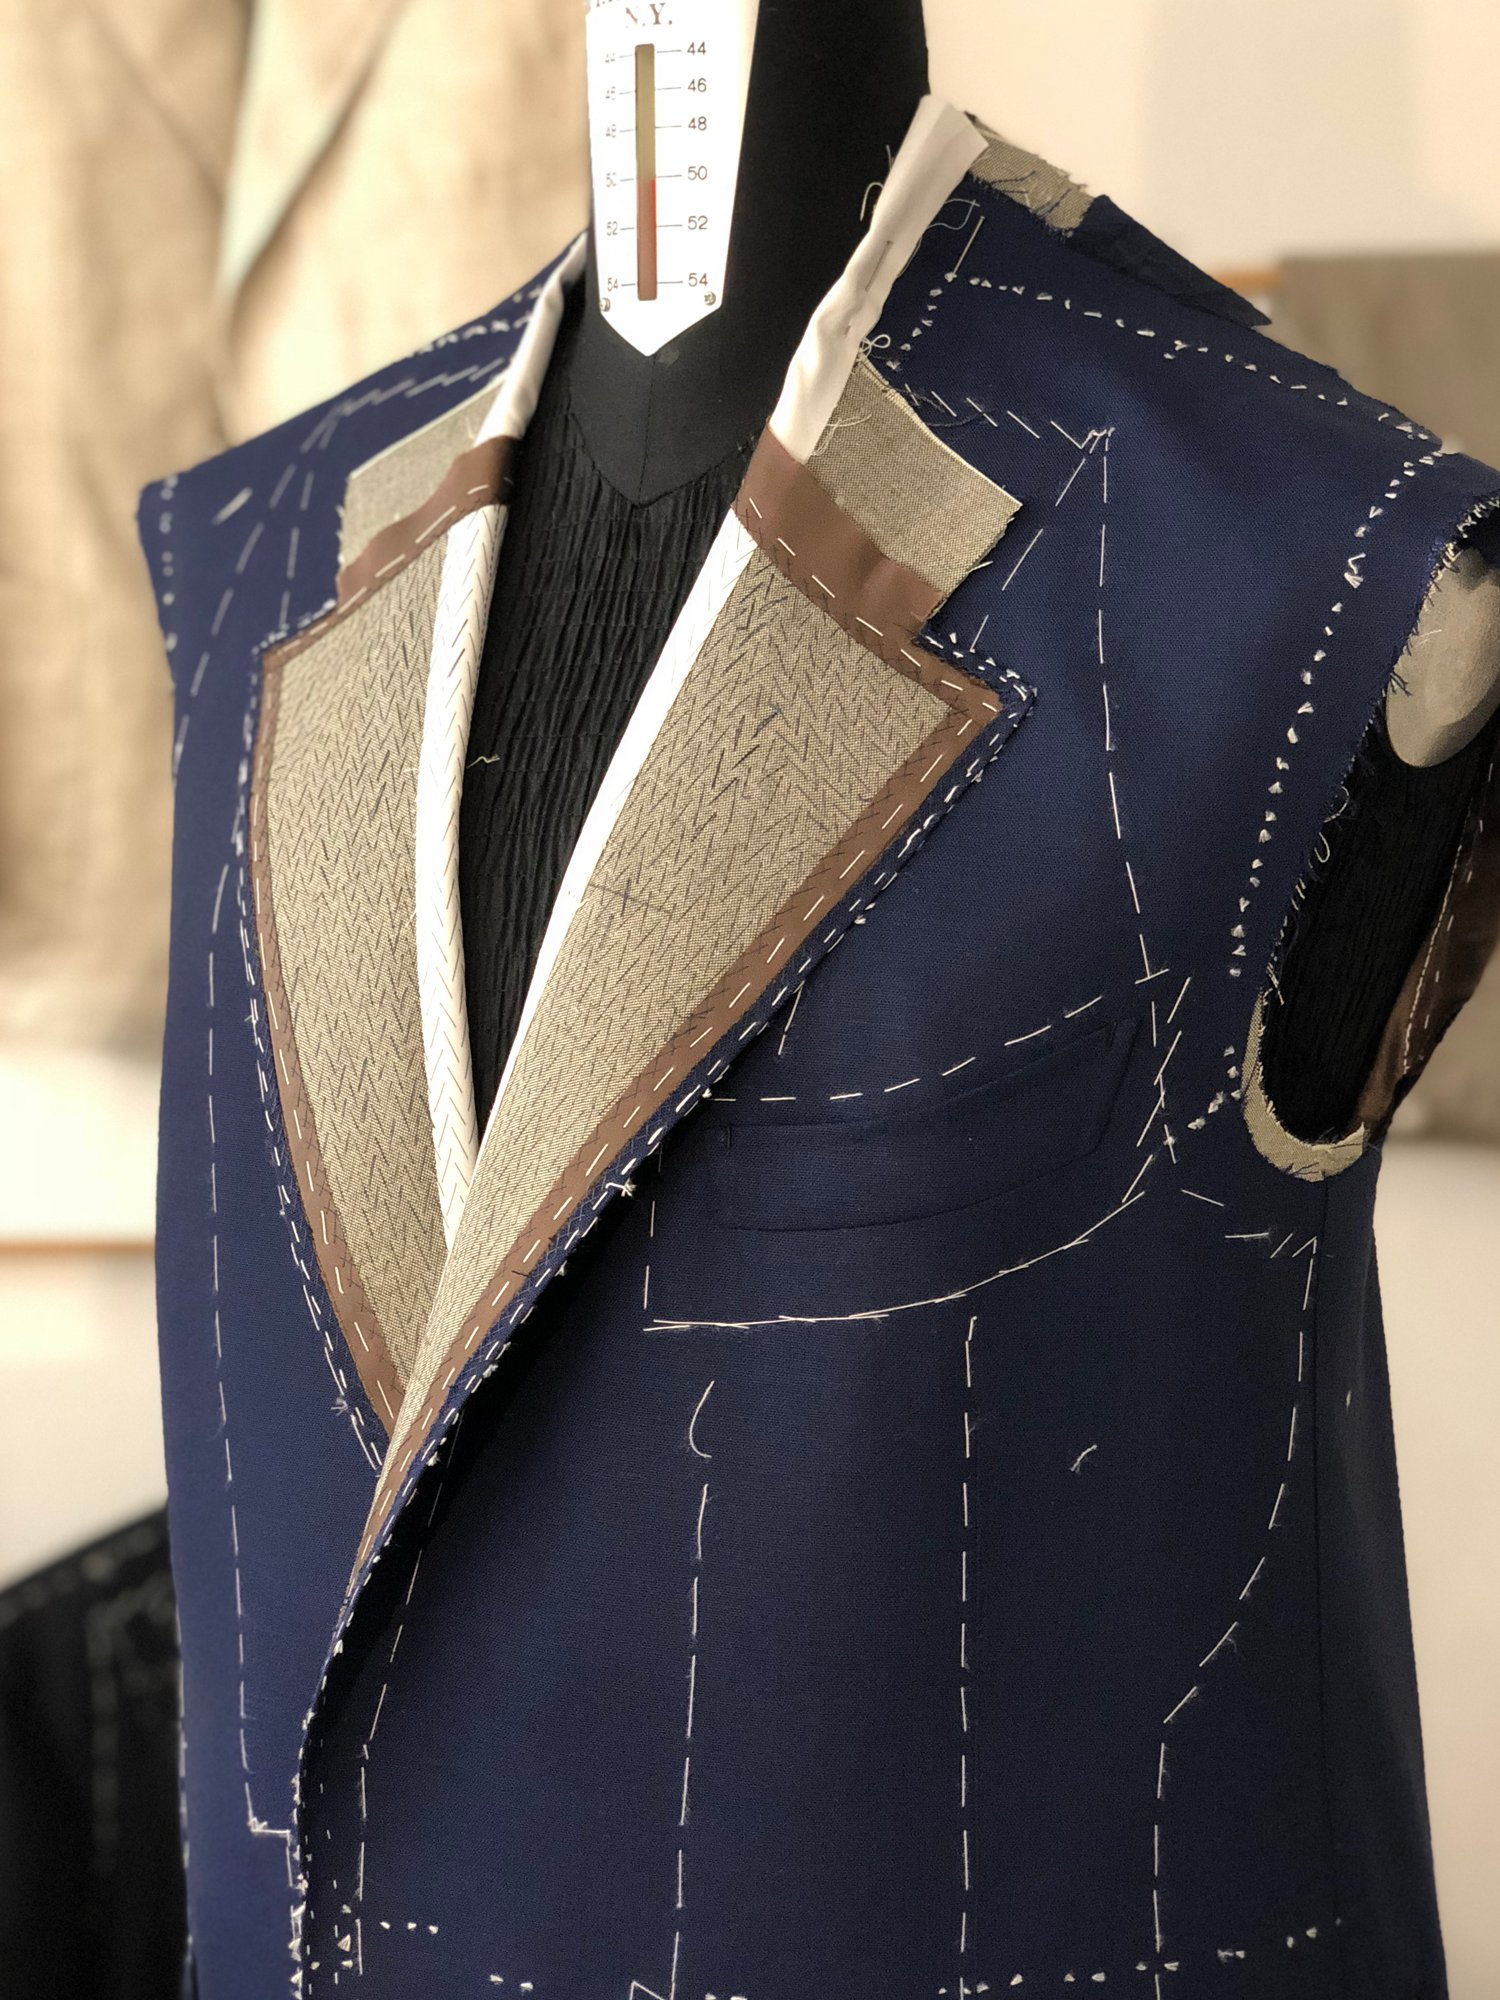 Sartoria Sciarra, bespoke suit, bespoke jacket in progress, hand made tailoring, bespoke tailoring, artisan craftsmanship, hand pad stitched lapels, Italian camel hair canvas, Loro Piana Zelander high twist wool fabric, luxury bespoke, luxury tailoring, barchetta out breast pocket,